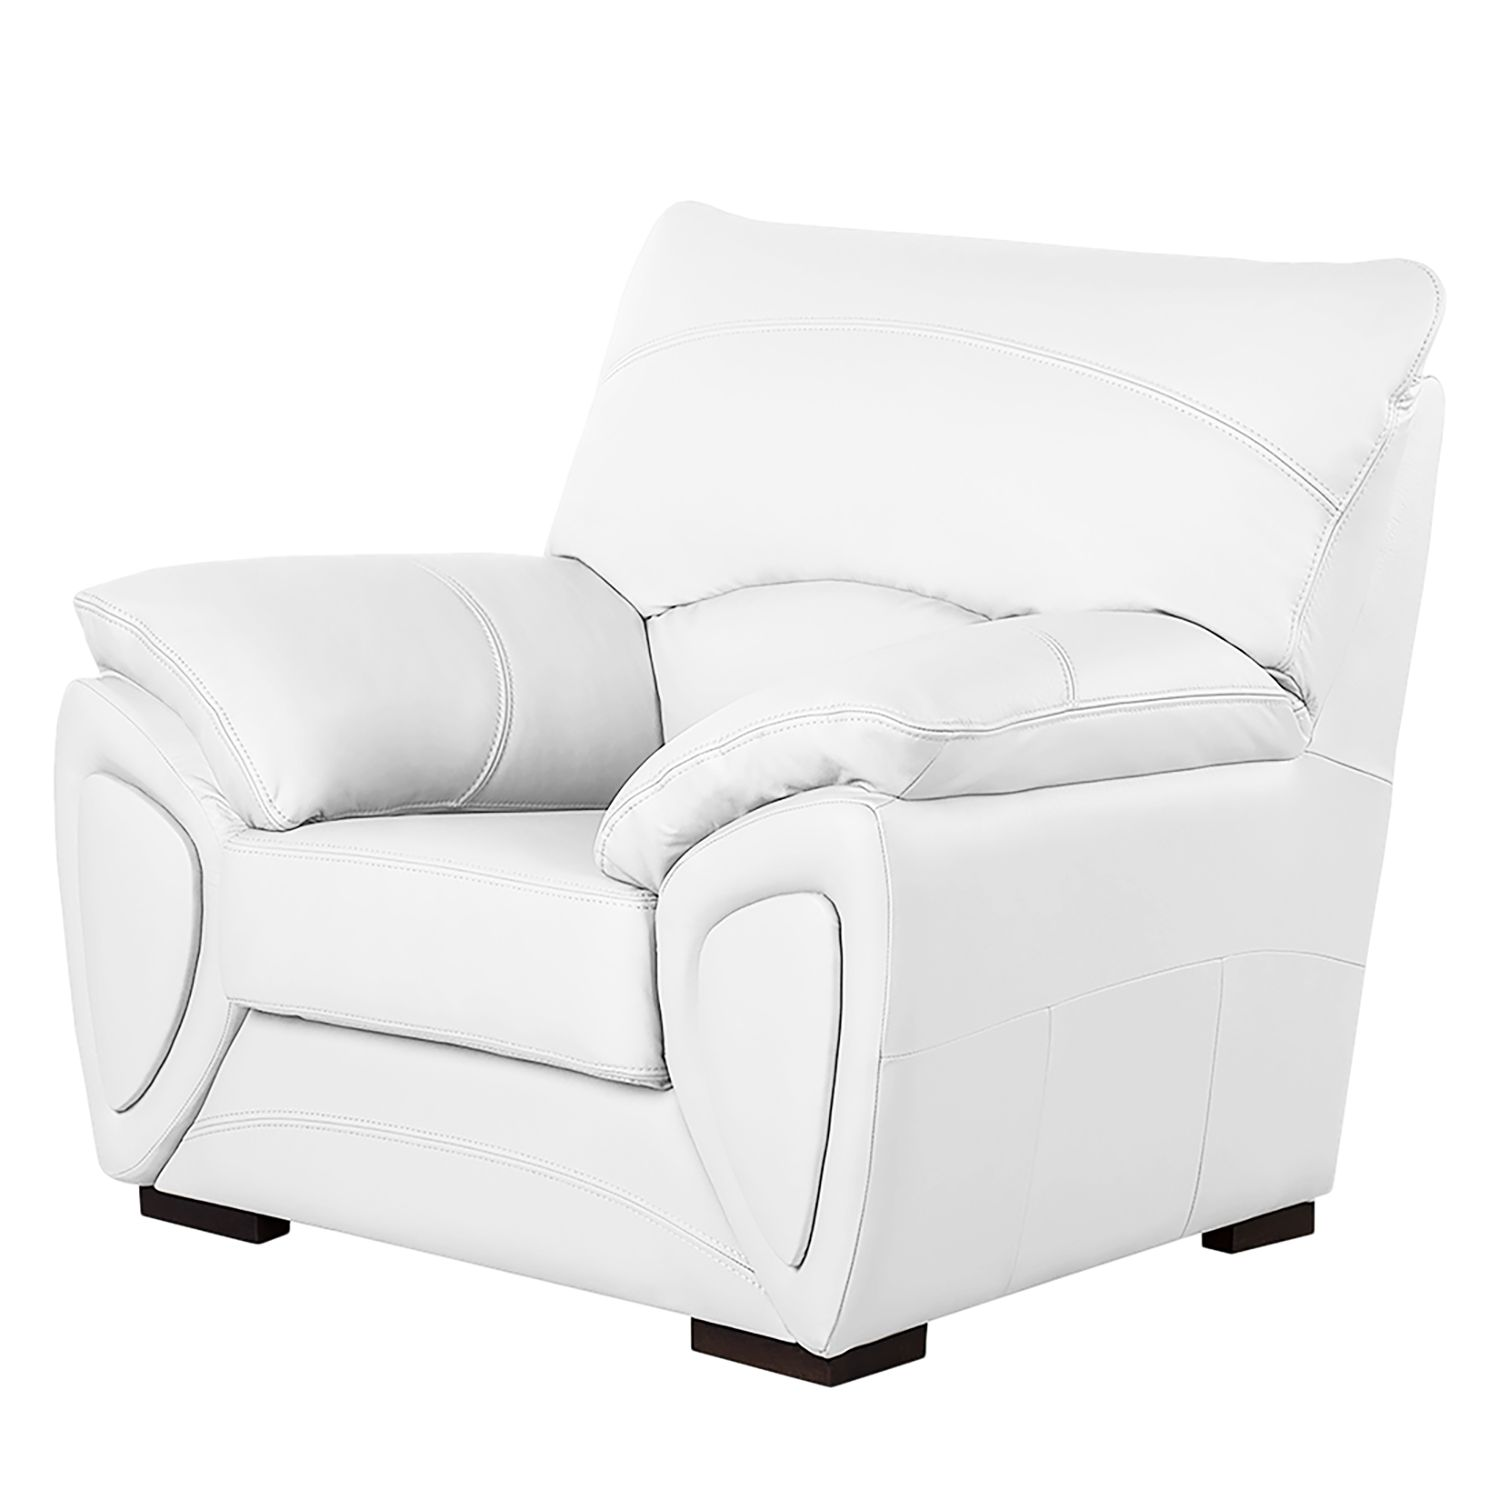 fauteuil luzzi imitation cuir blanc fredriks. Black Bedroom Furniture Sets. Home Design Ideas